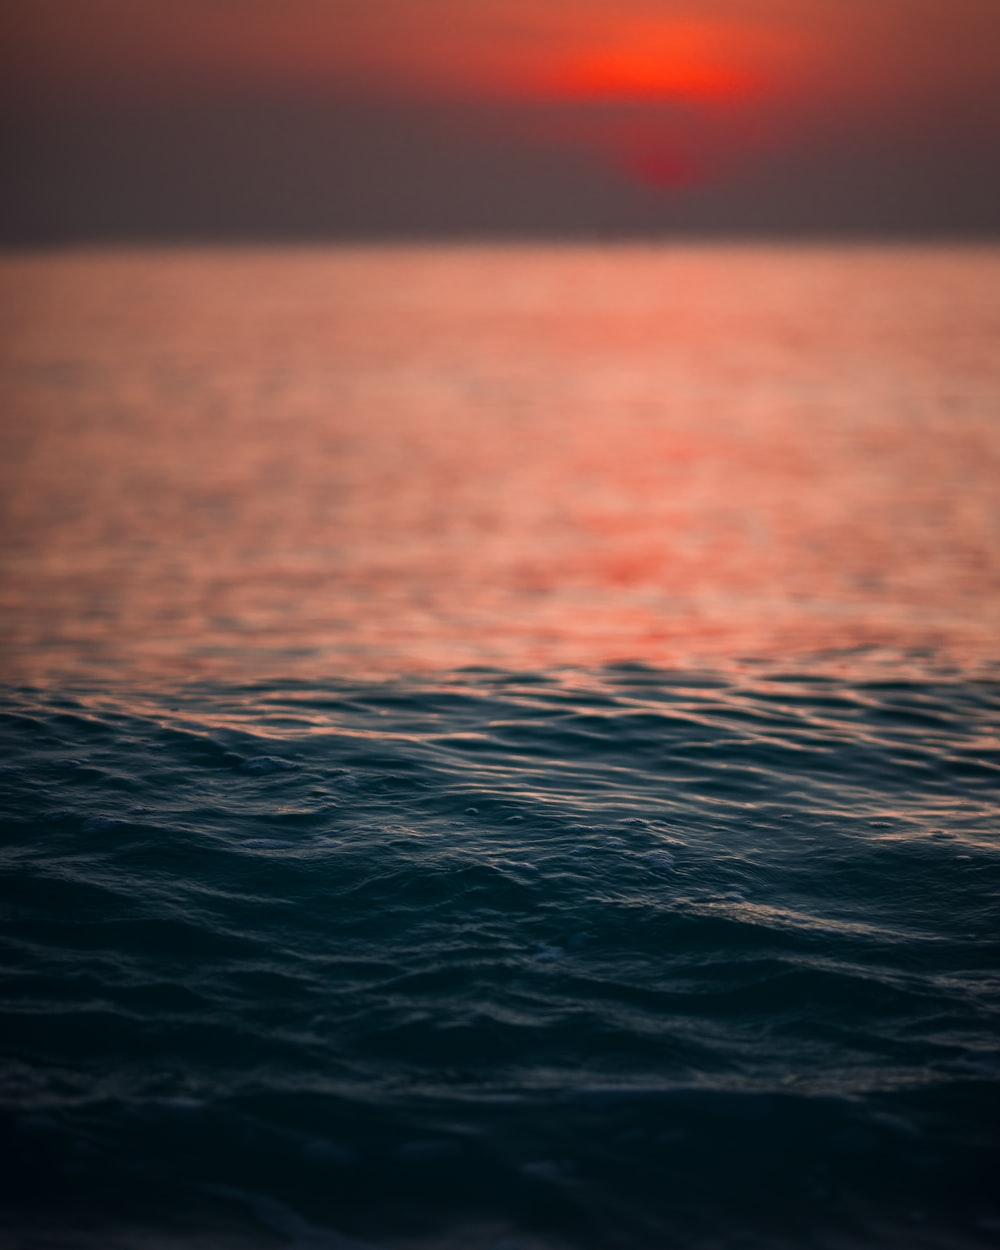 sea waves during sunset